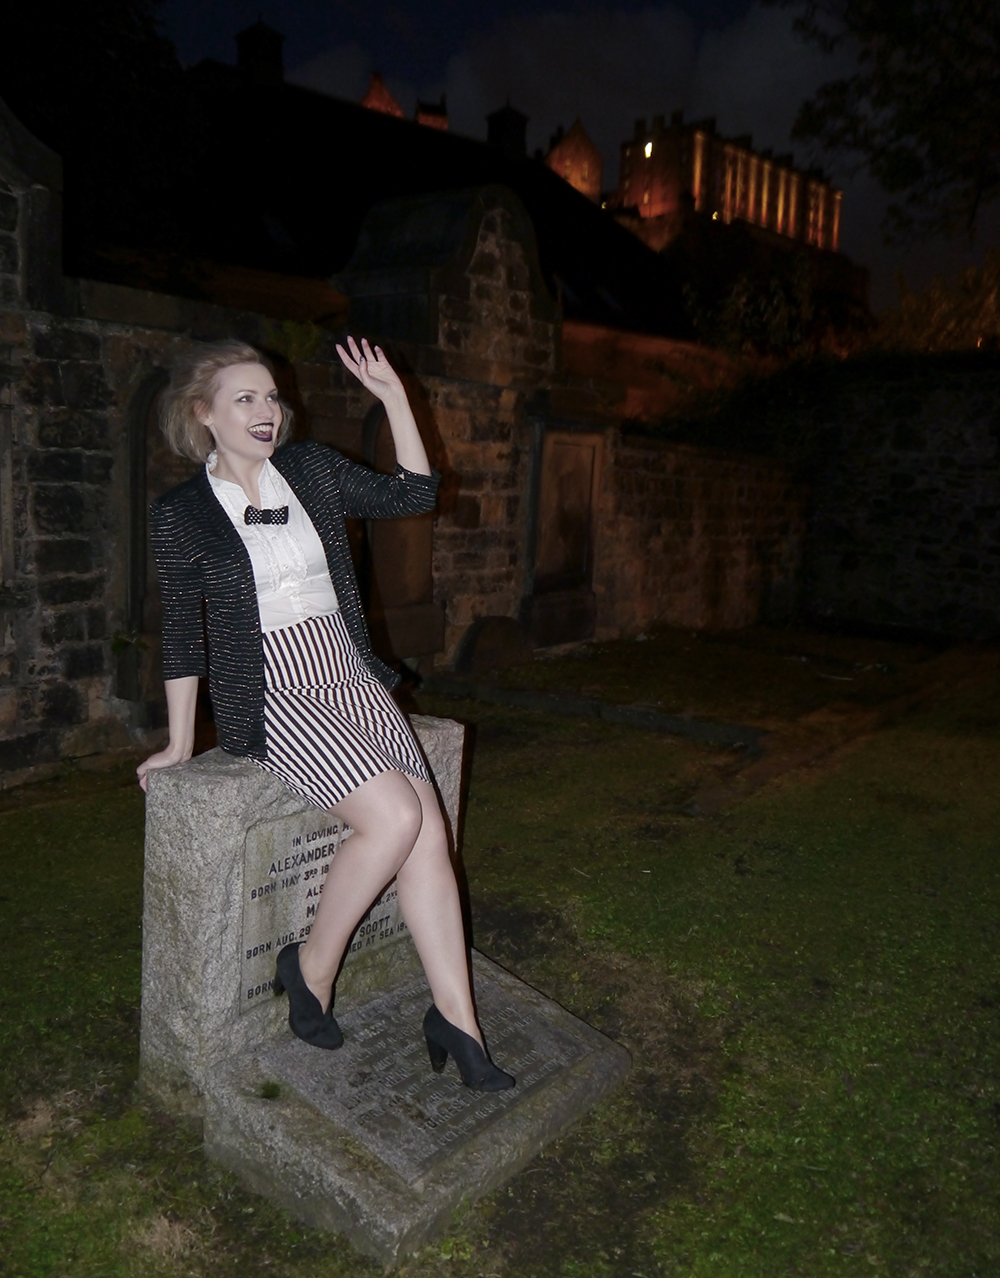 wearable halloween outfit, Beetlejuice girl costume, monochrome ghost costume, easy halloween costume, unlikely horror style icon, blogger halloween, St John's cemetery Edinburgh, creepy Edinburgh ghost